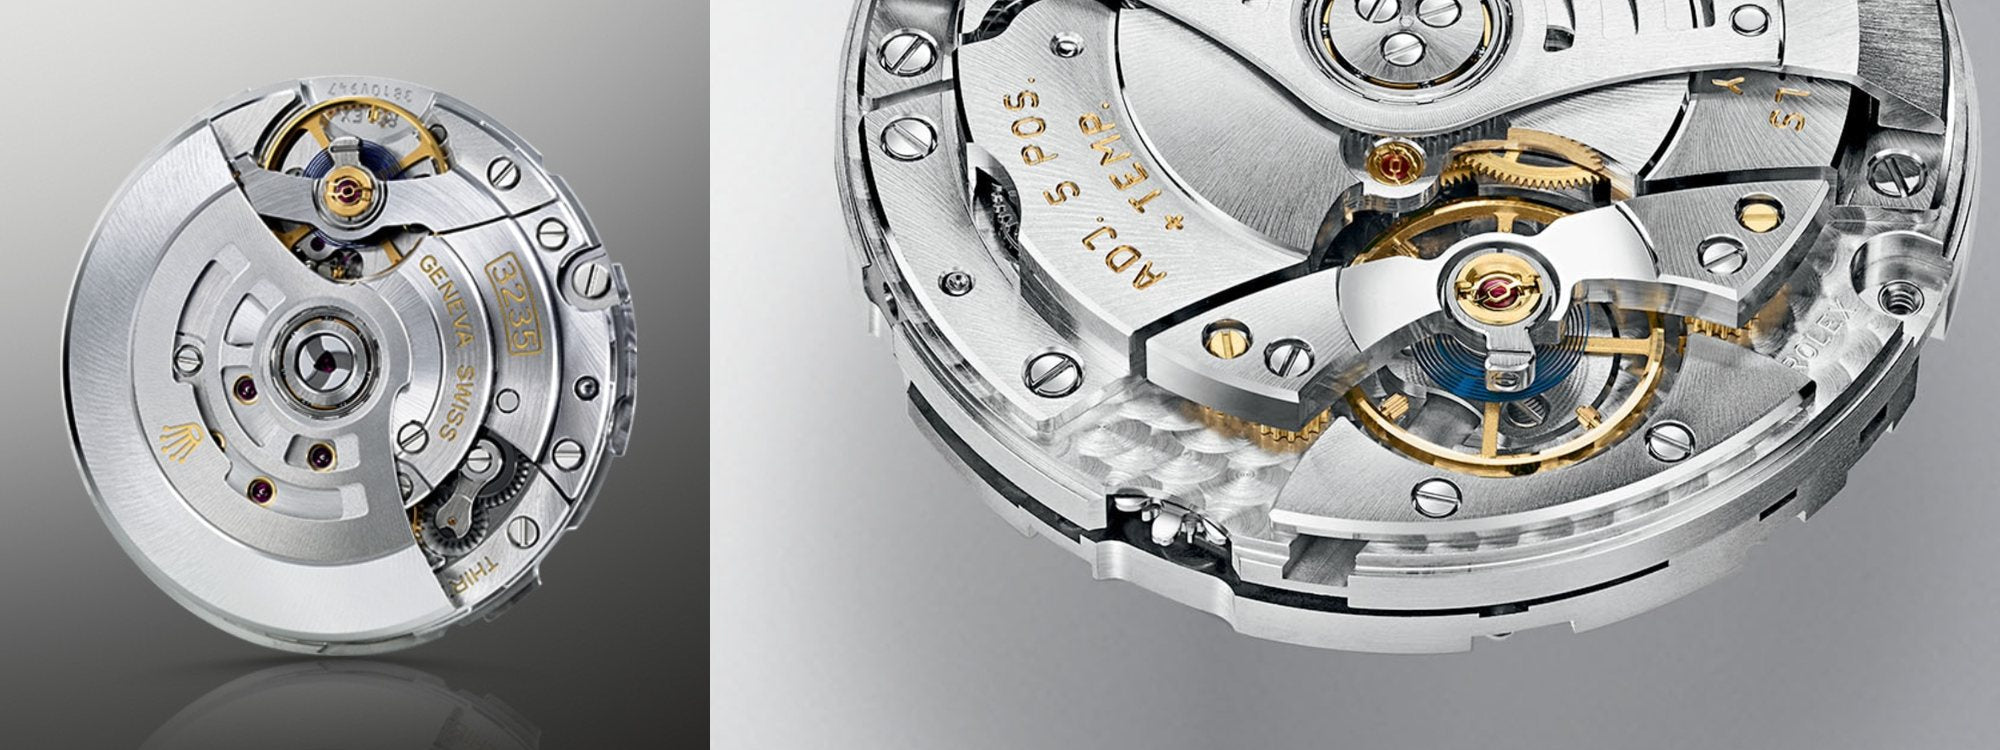 Rolex Movements